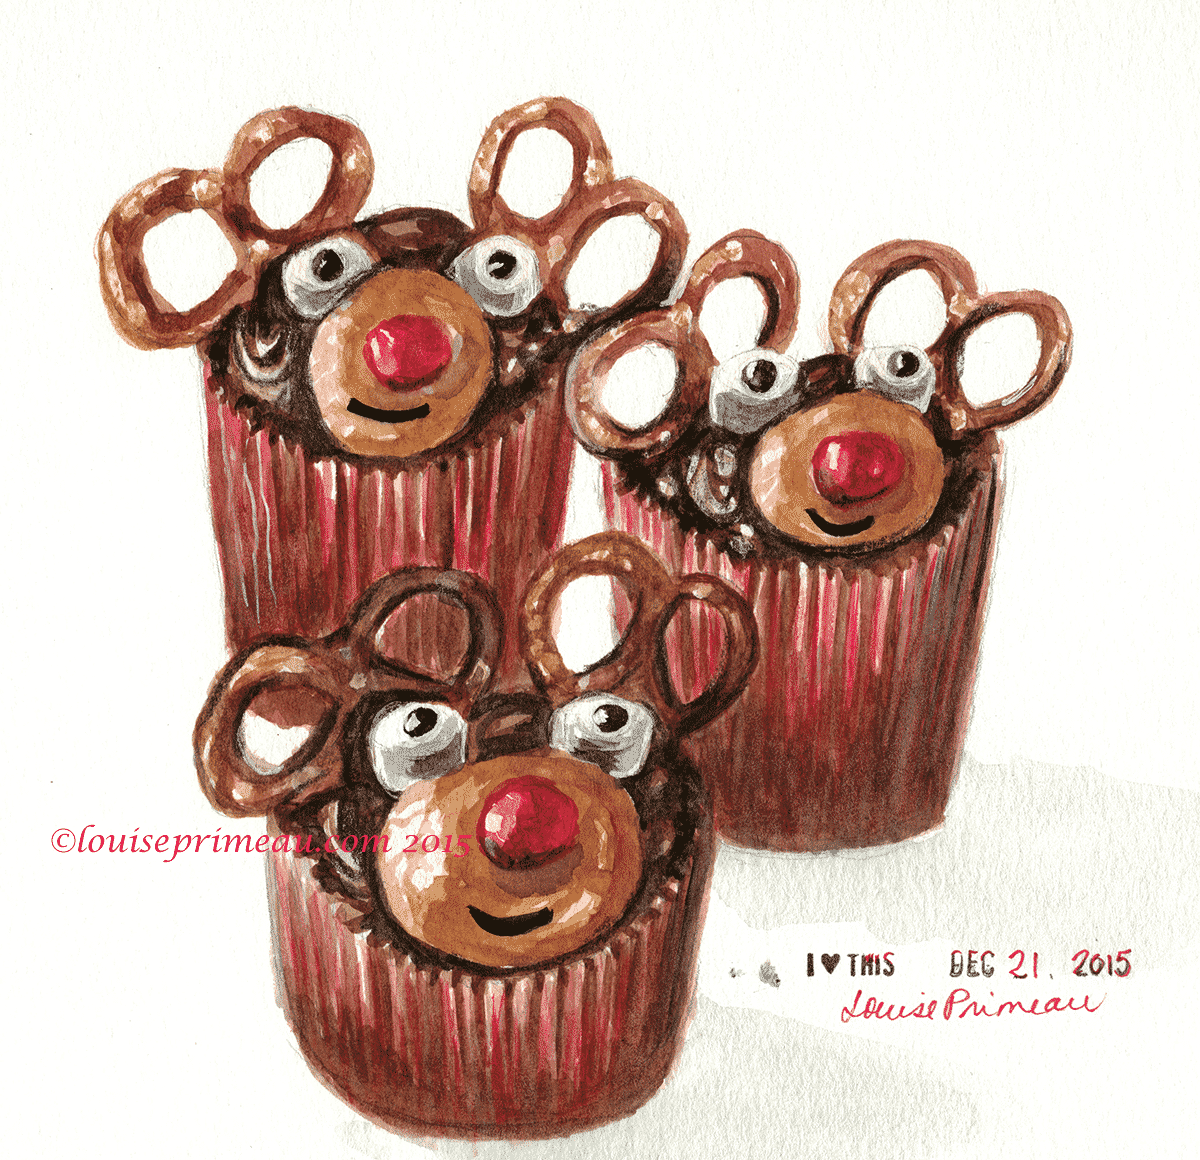 watercolour reindeer cupcakes